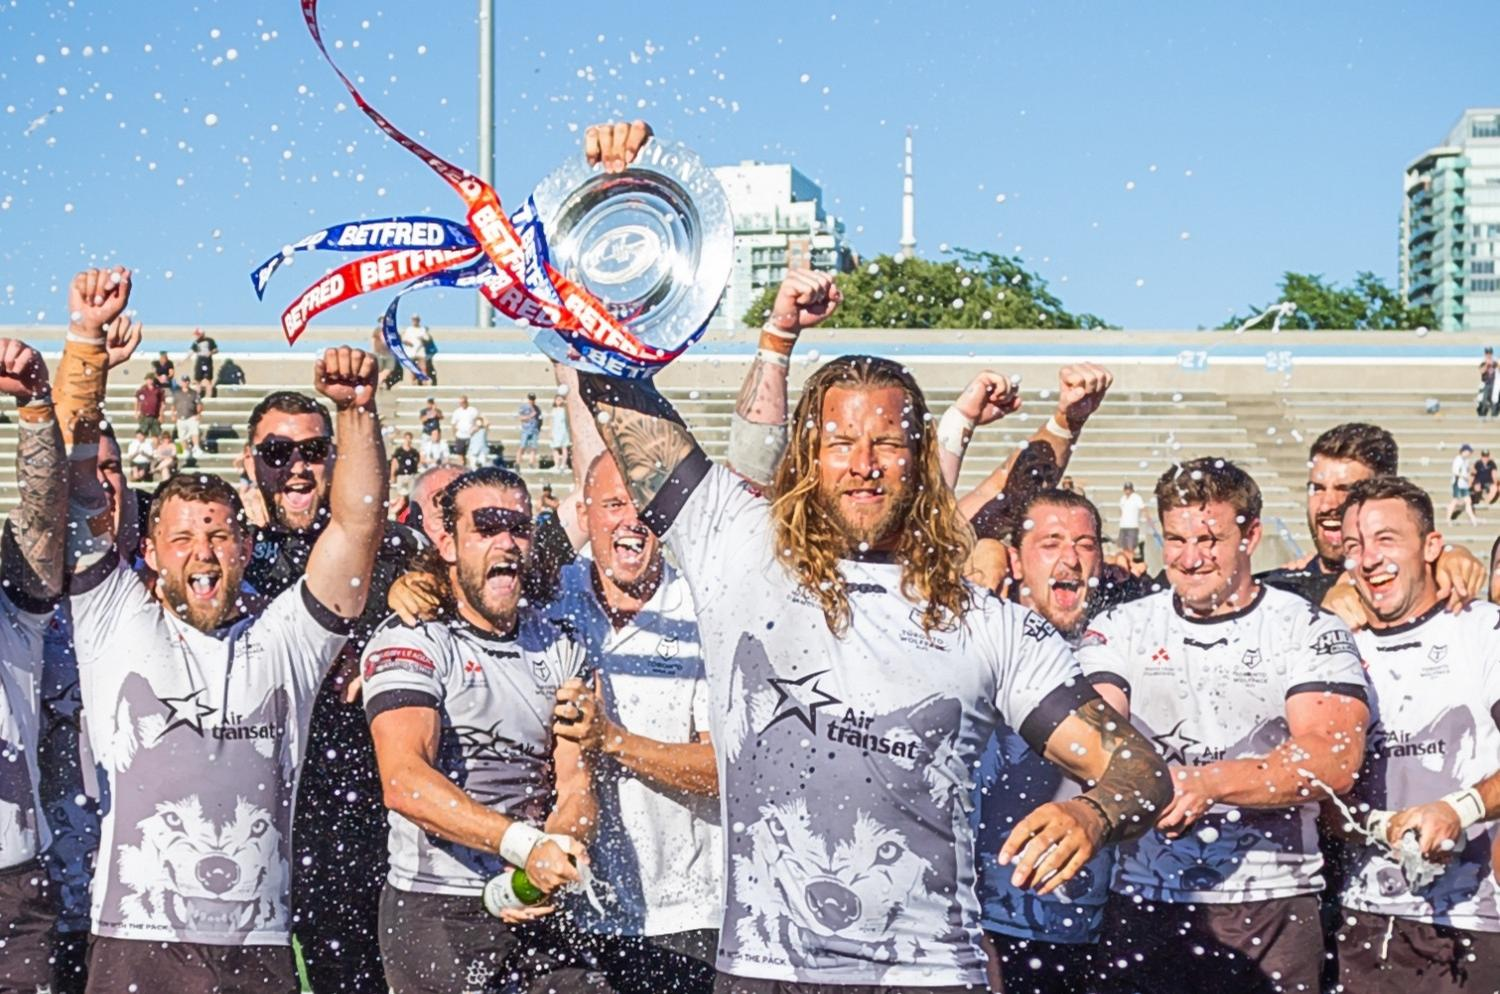 The first overseas club in the RFL, the Toronto Wolfpack, won promotion to the Championship in its first season / RFL